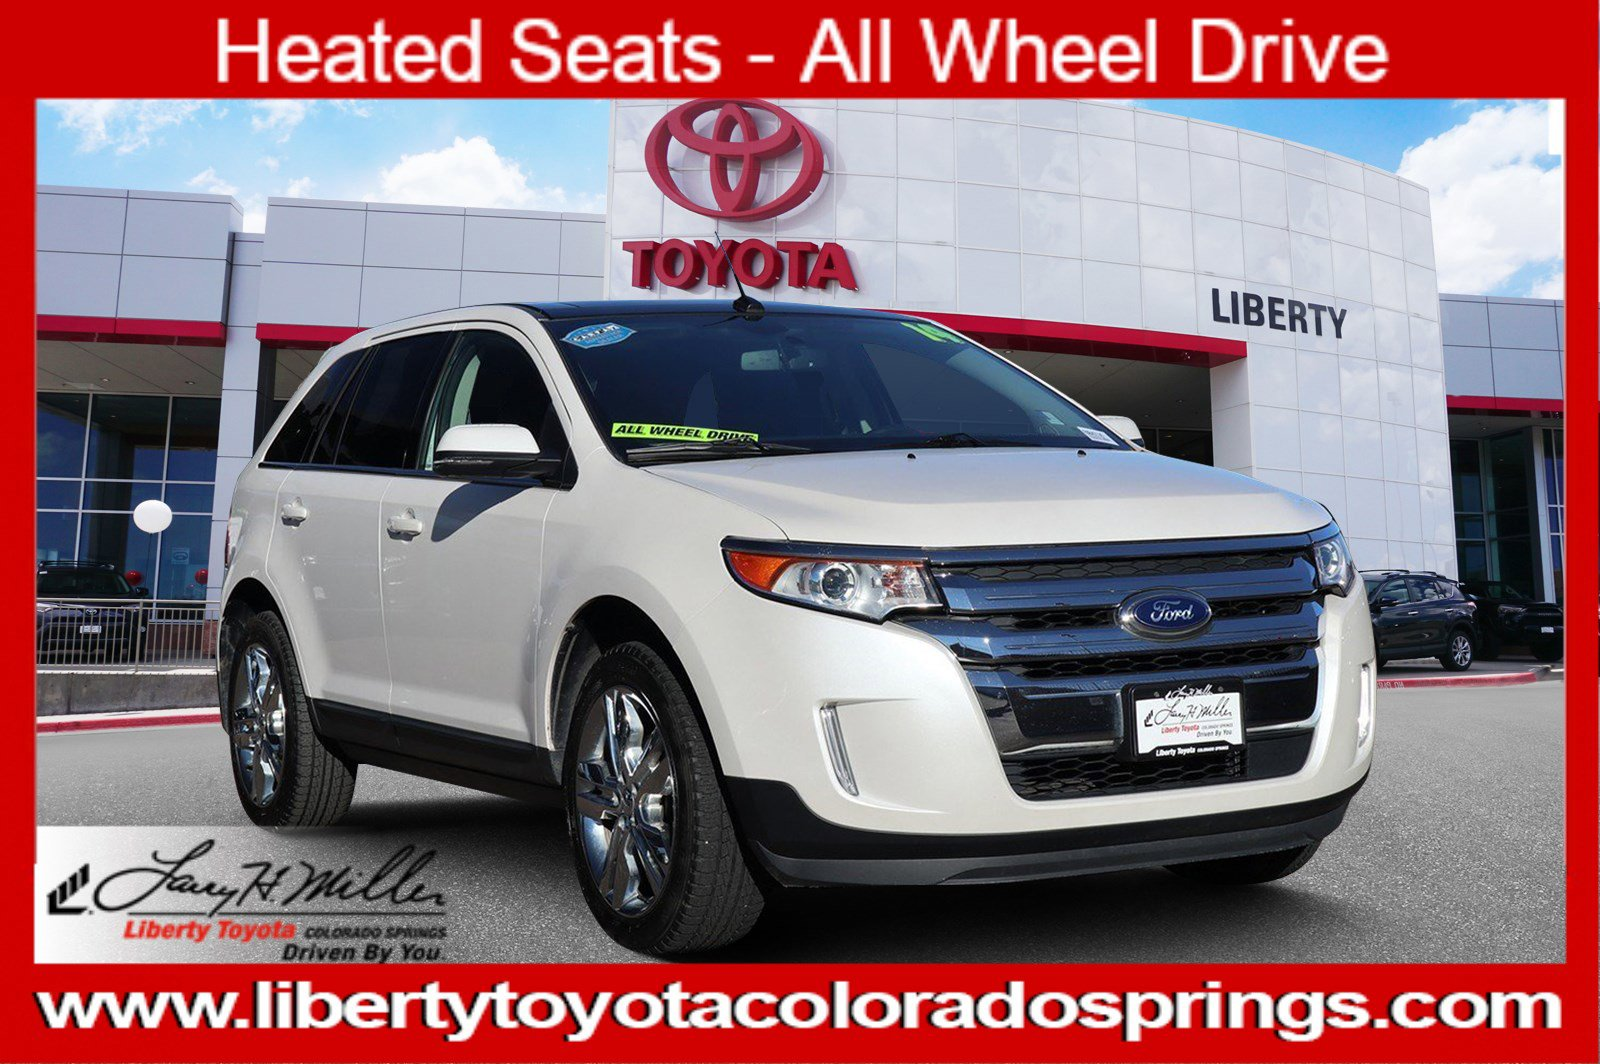 2014 Ford Edge AWD Limited image